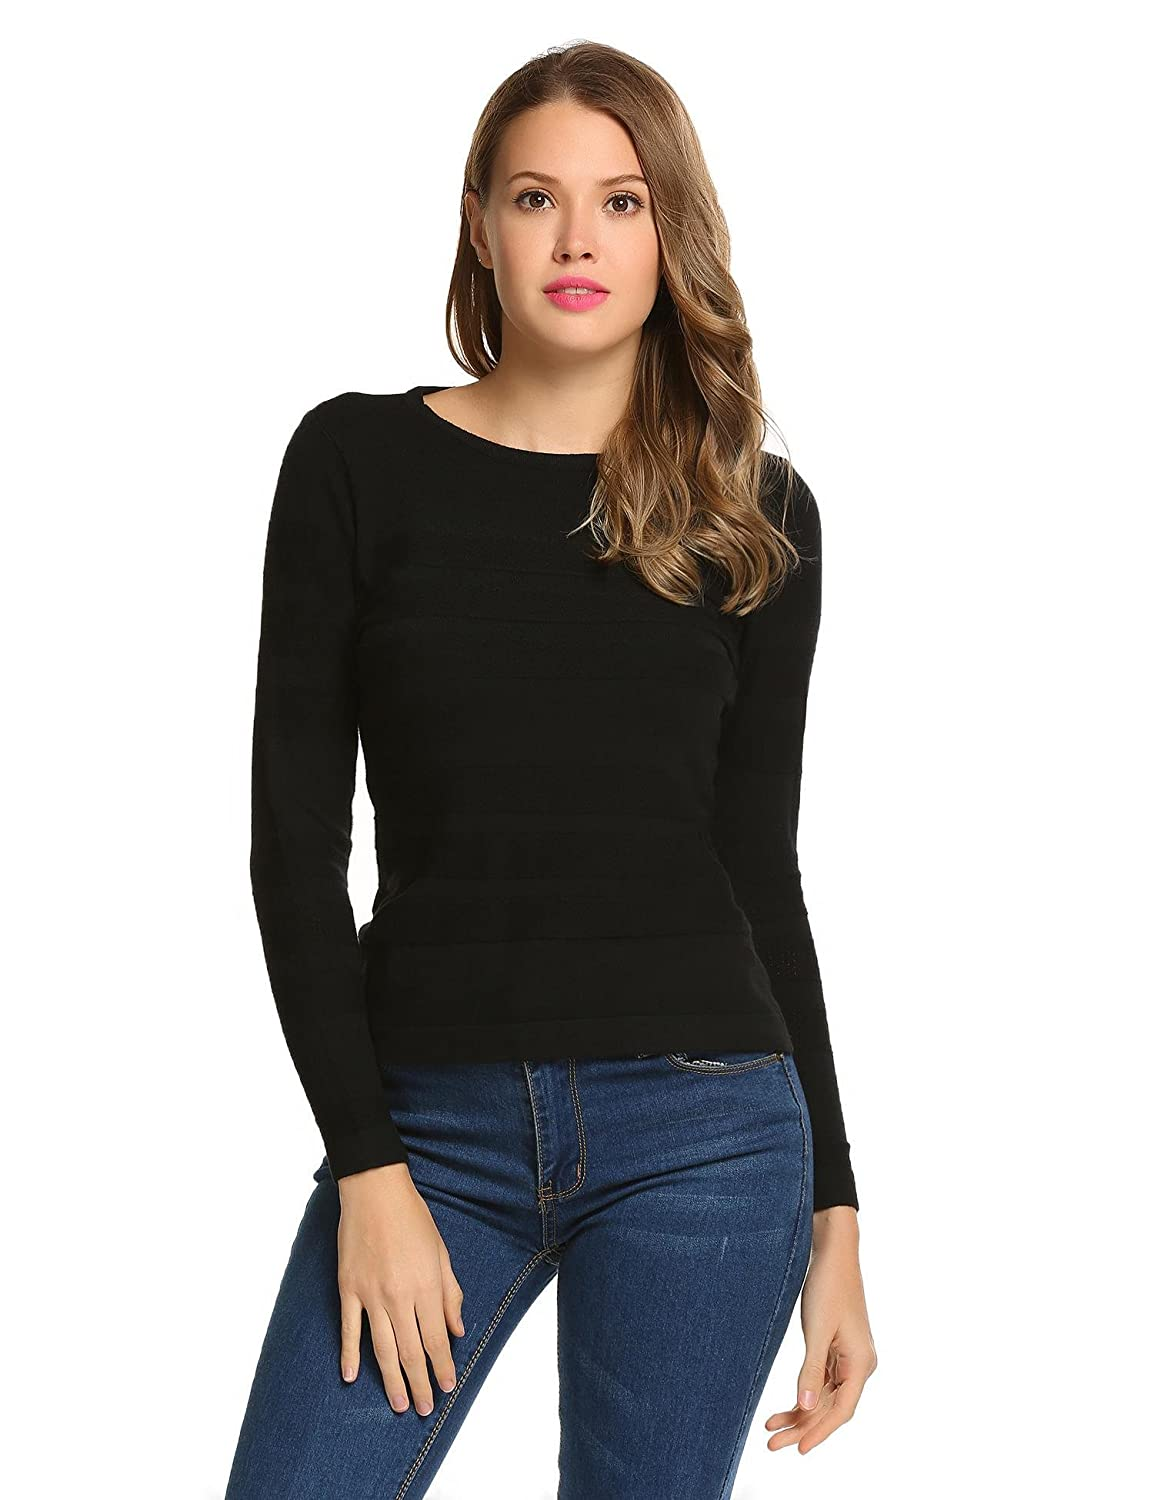 Meaneor Women's Long Sleeve Crew Neck Casual Knitted Pullover Sweaters Top ##MAV005144